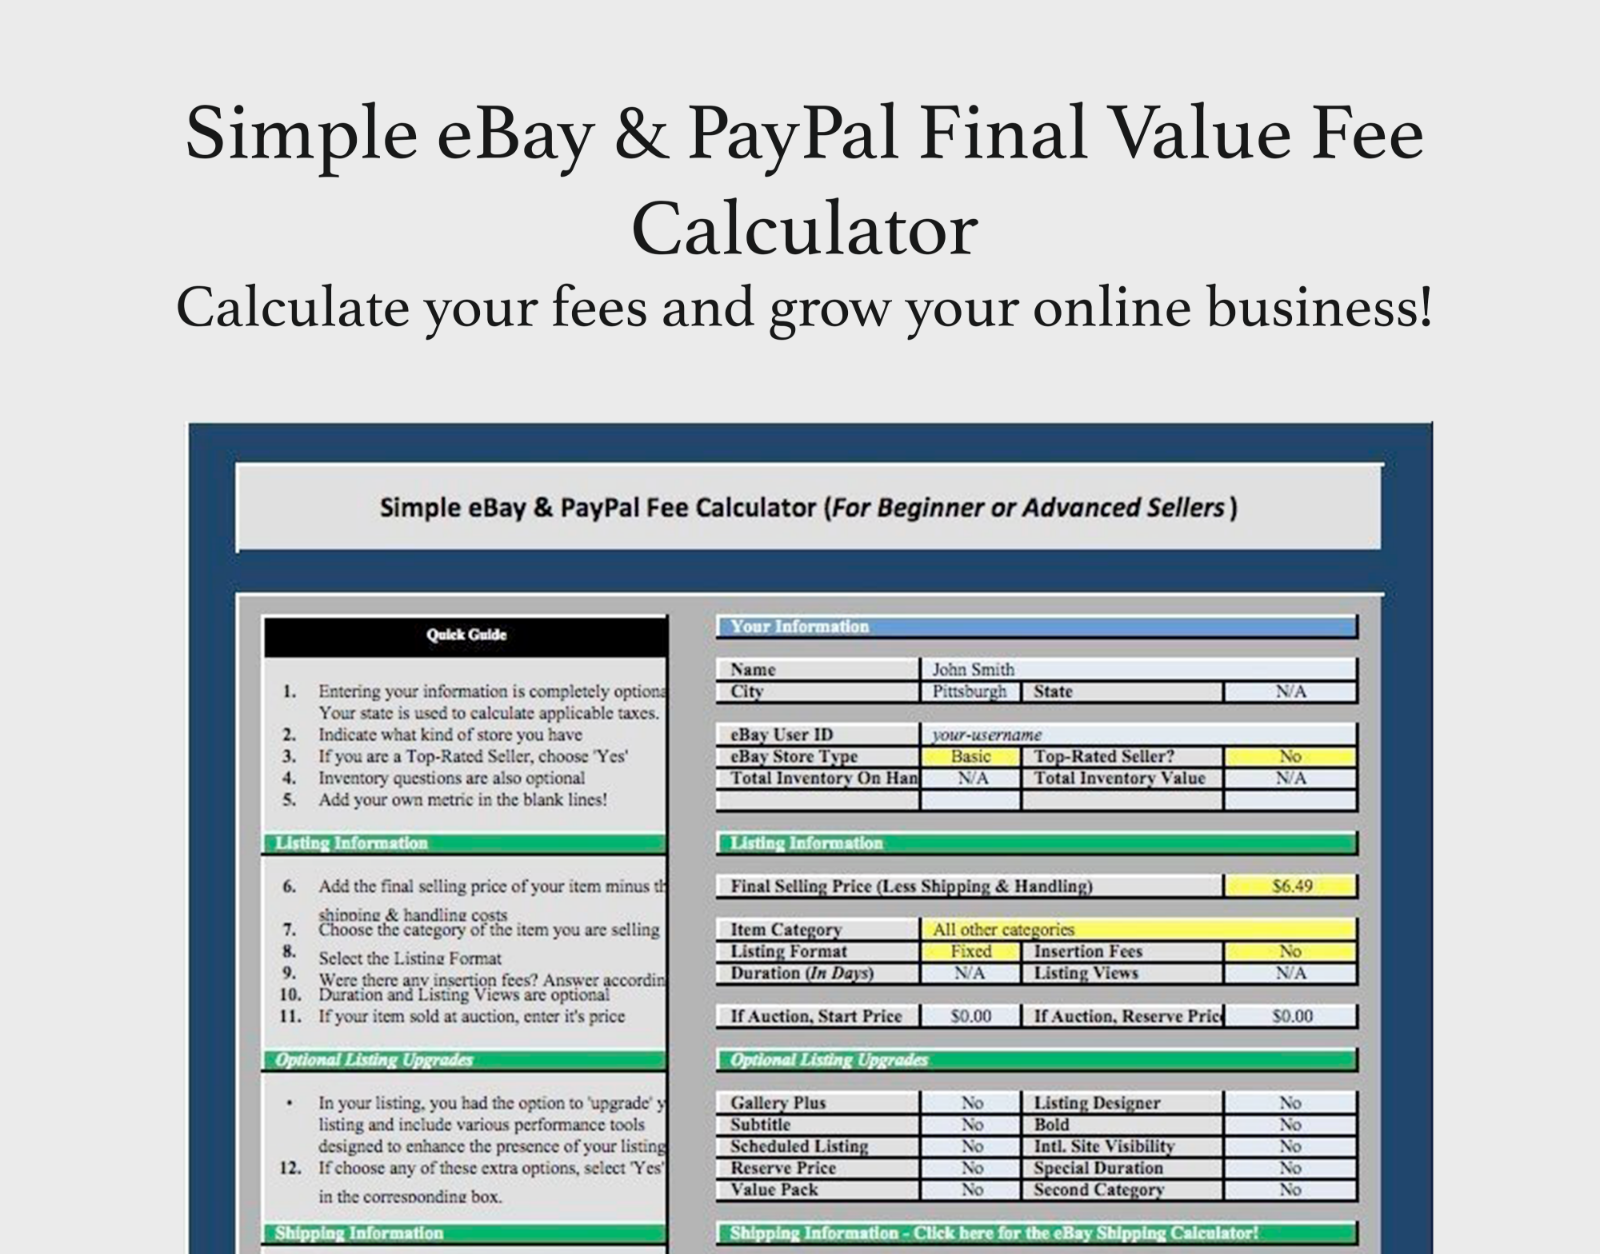 Super Simple 2018 Usa Ebay Paypal Final Fee Calculator Ms Excel For Sale Online Ebay